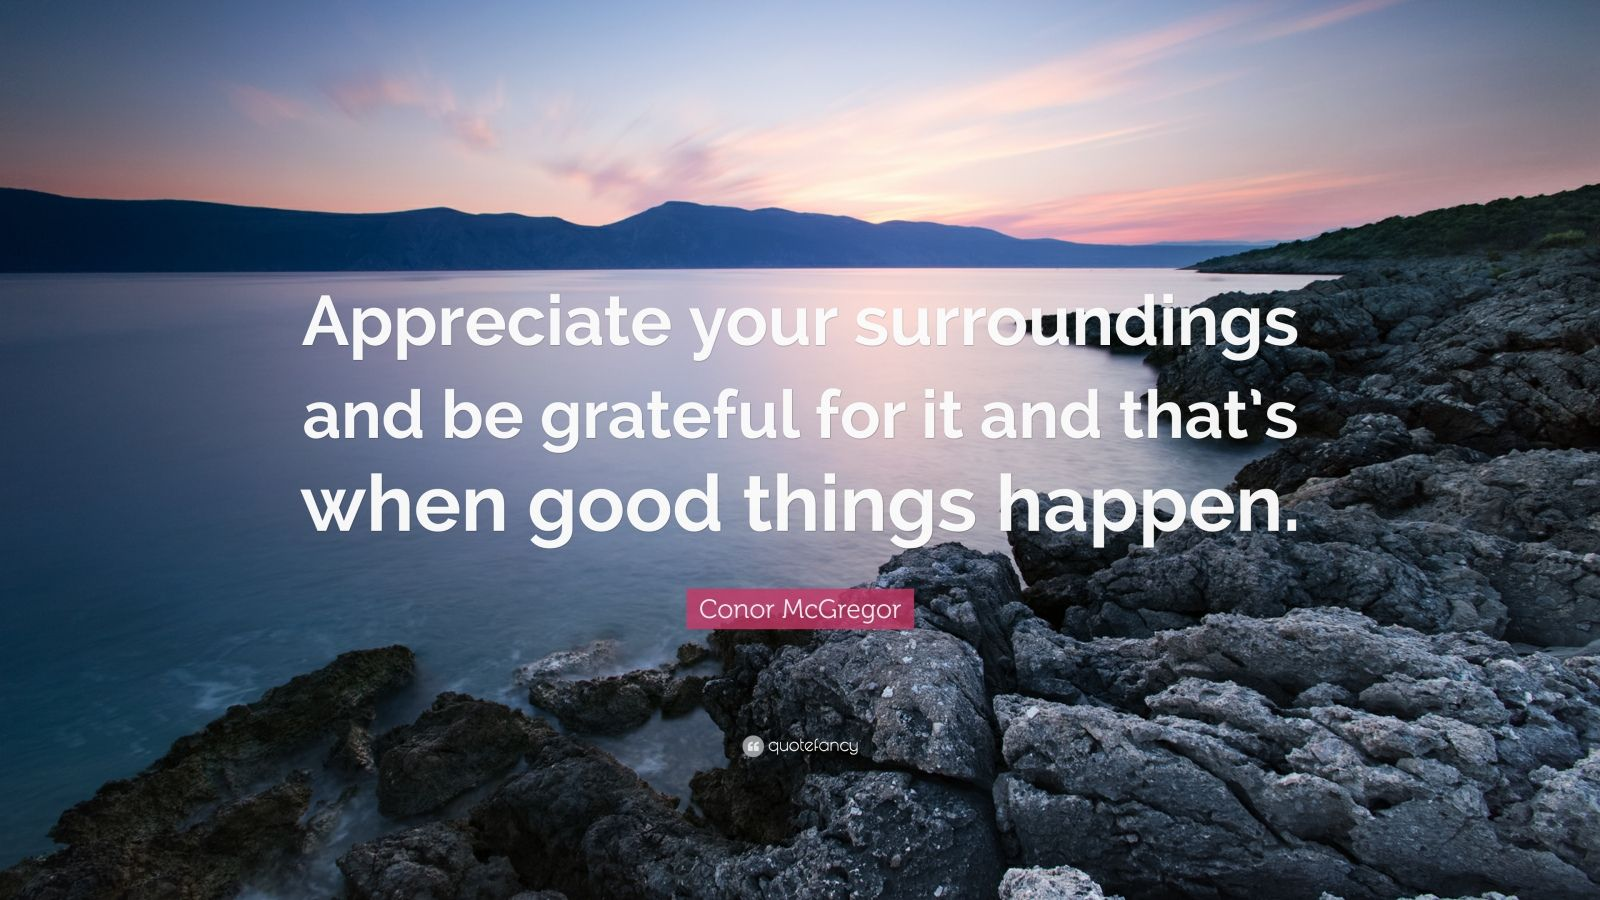 """Conor McGregor Quote: """"Appreciate your surroundings and be grateful for it and that's when good things happen."""""""